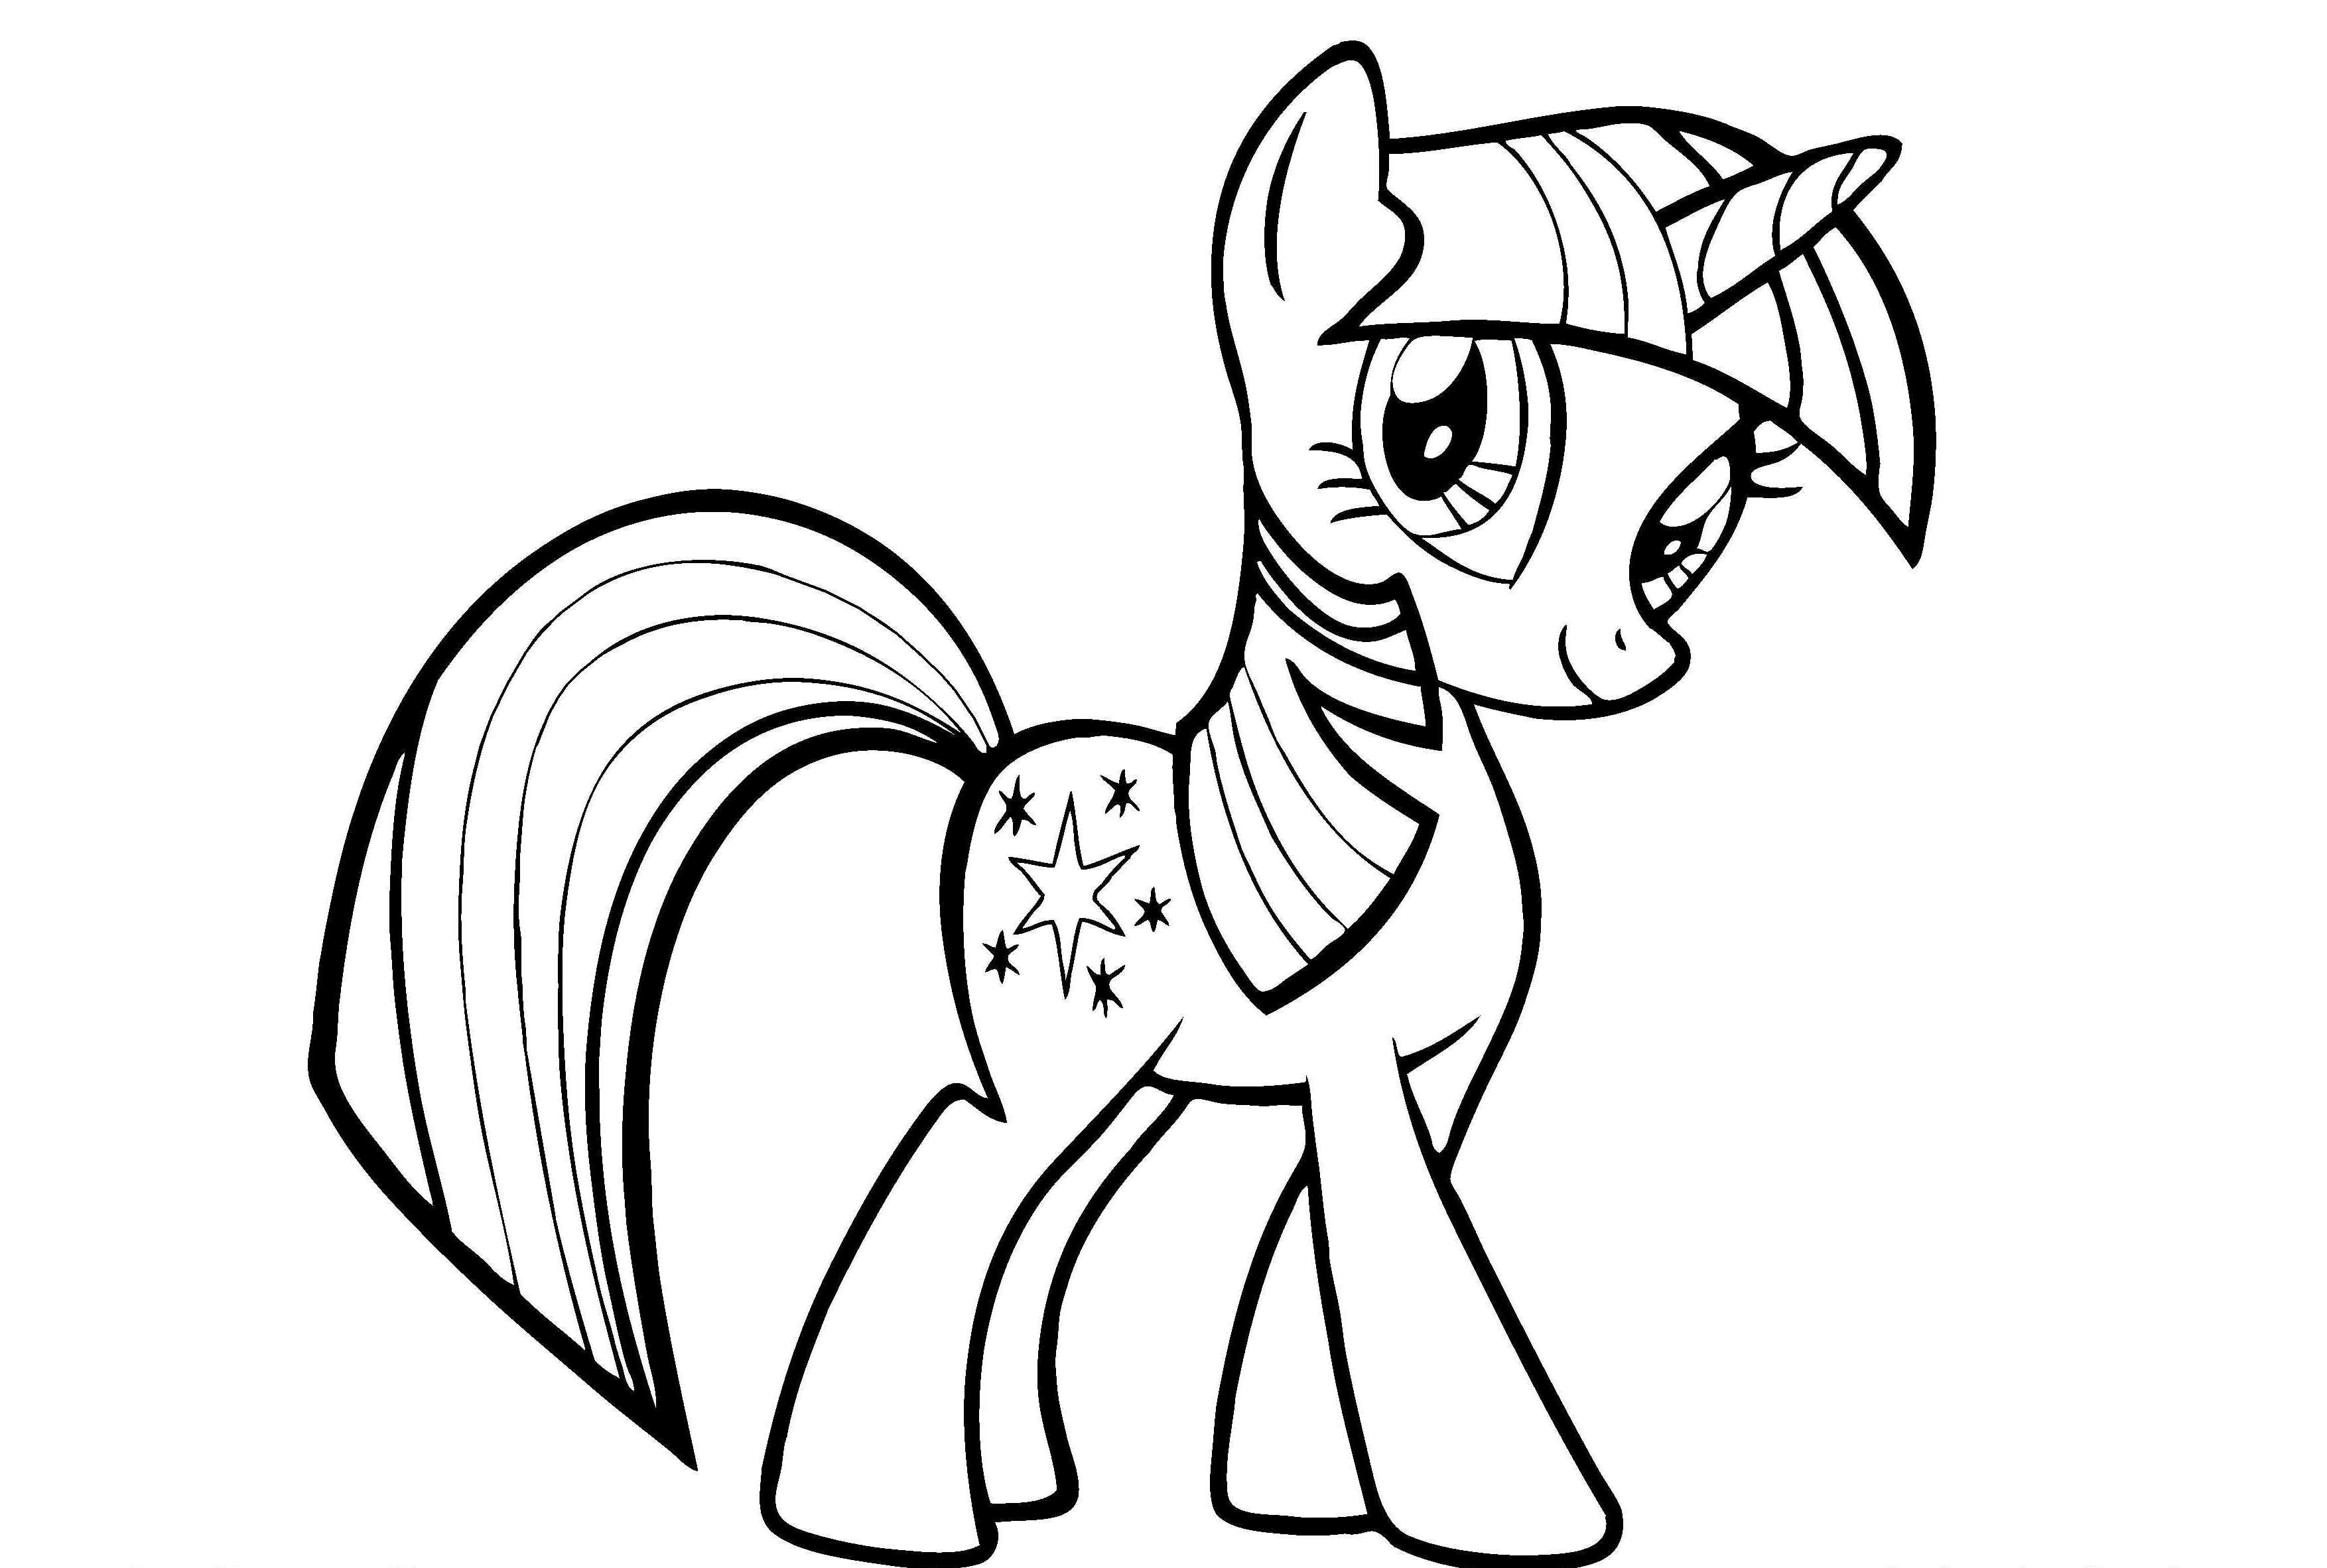 Twilight Sparkle My Little Pony Coloring Pages Horse Coloring Pages My Little Pony Coloring My Little Pony Printable